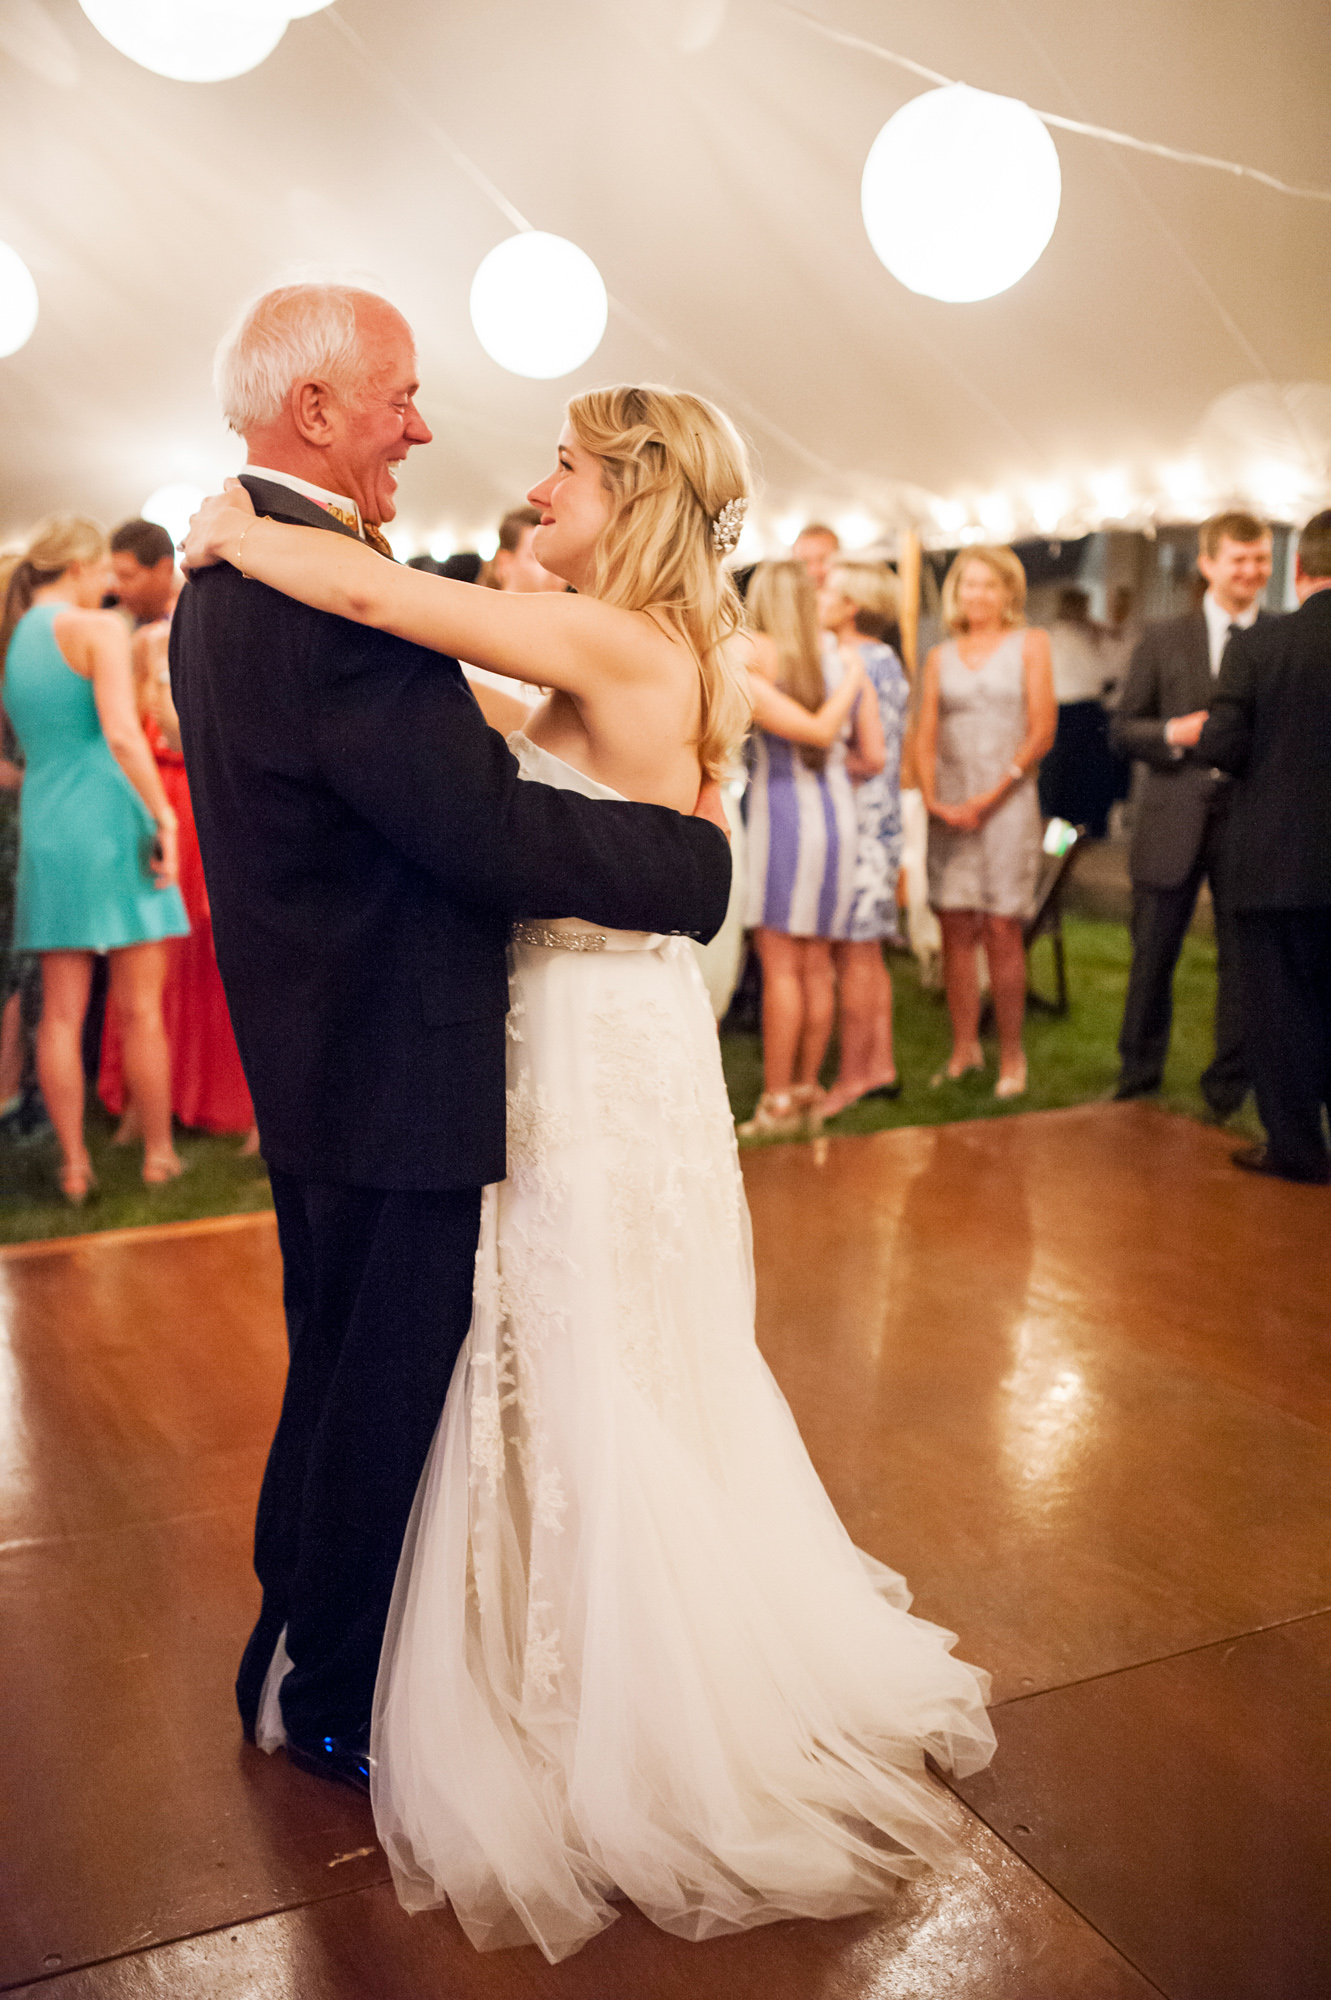 34Katy_Eddie_Talcott_House_Wedding_Westbrook_CT_Tanya_Salazar_Photography.jpg